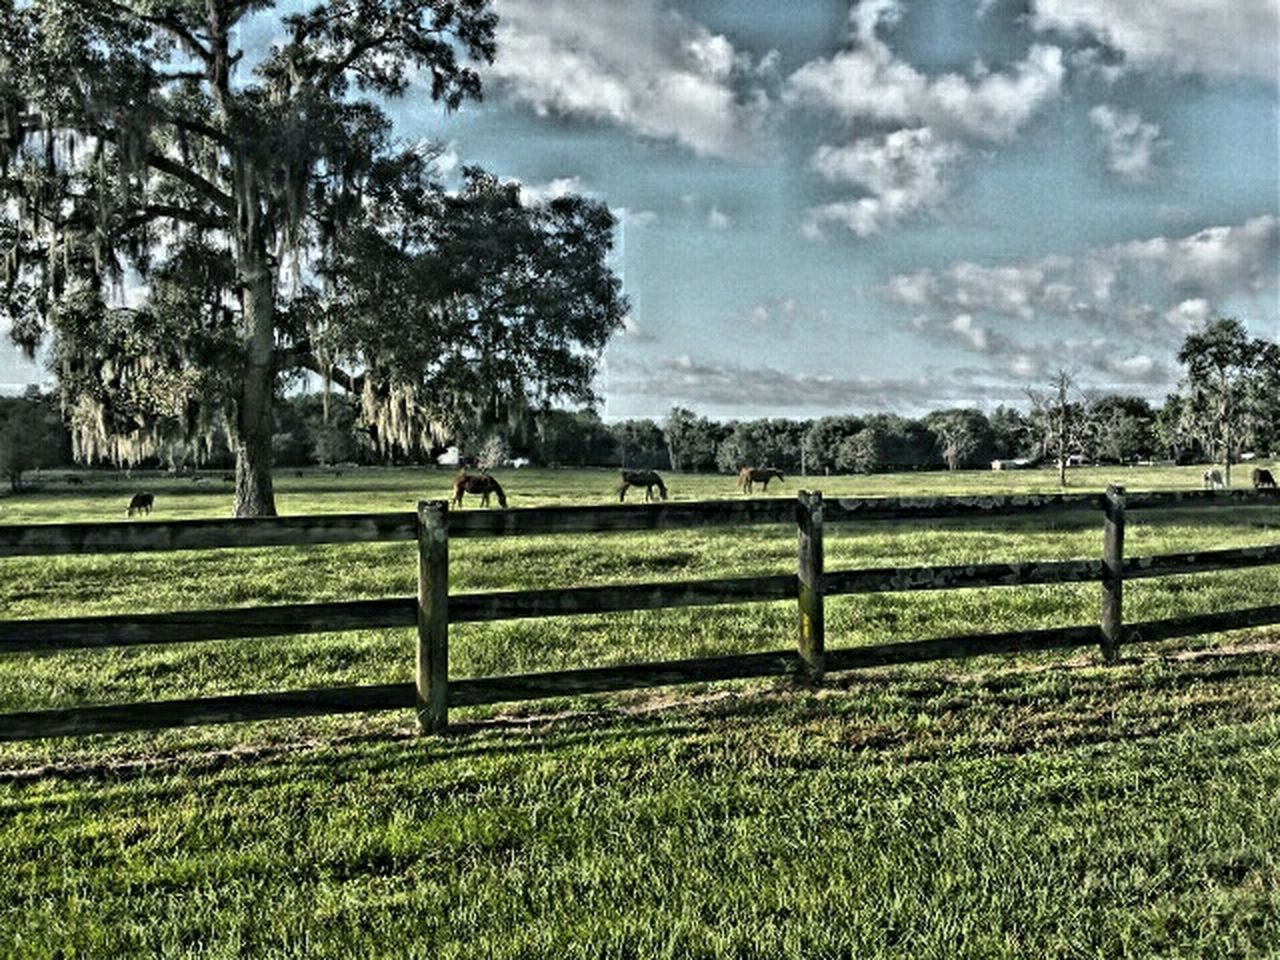 Learn & Shoot: Leading Lines Glitch Take A Look At The World Differently Check This Out Creative Light And Shadow I Love Horses Wooden Fence